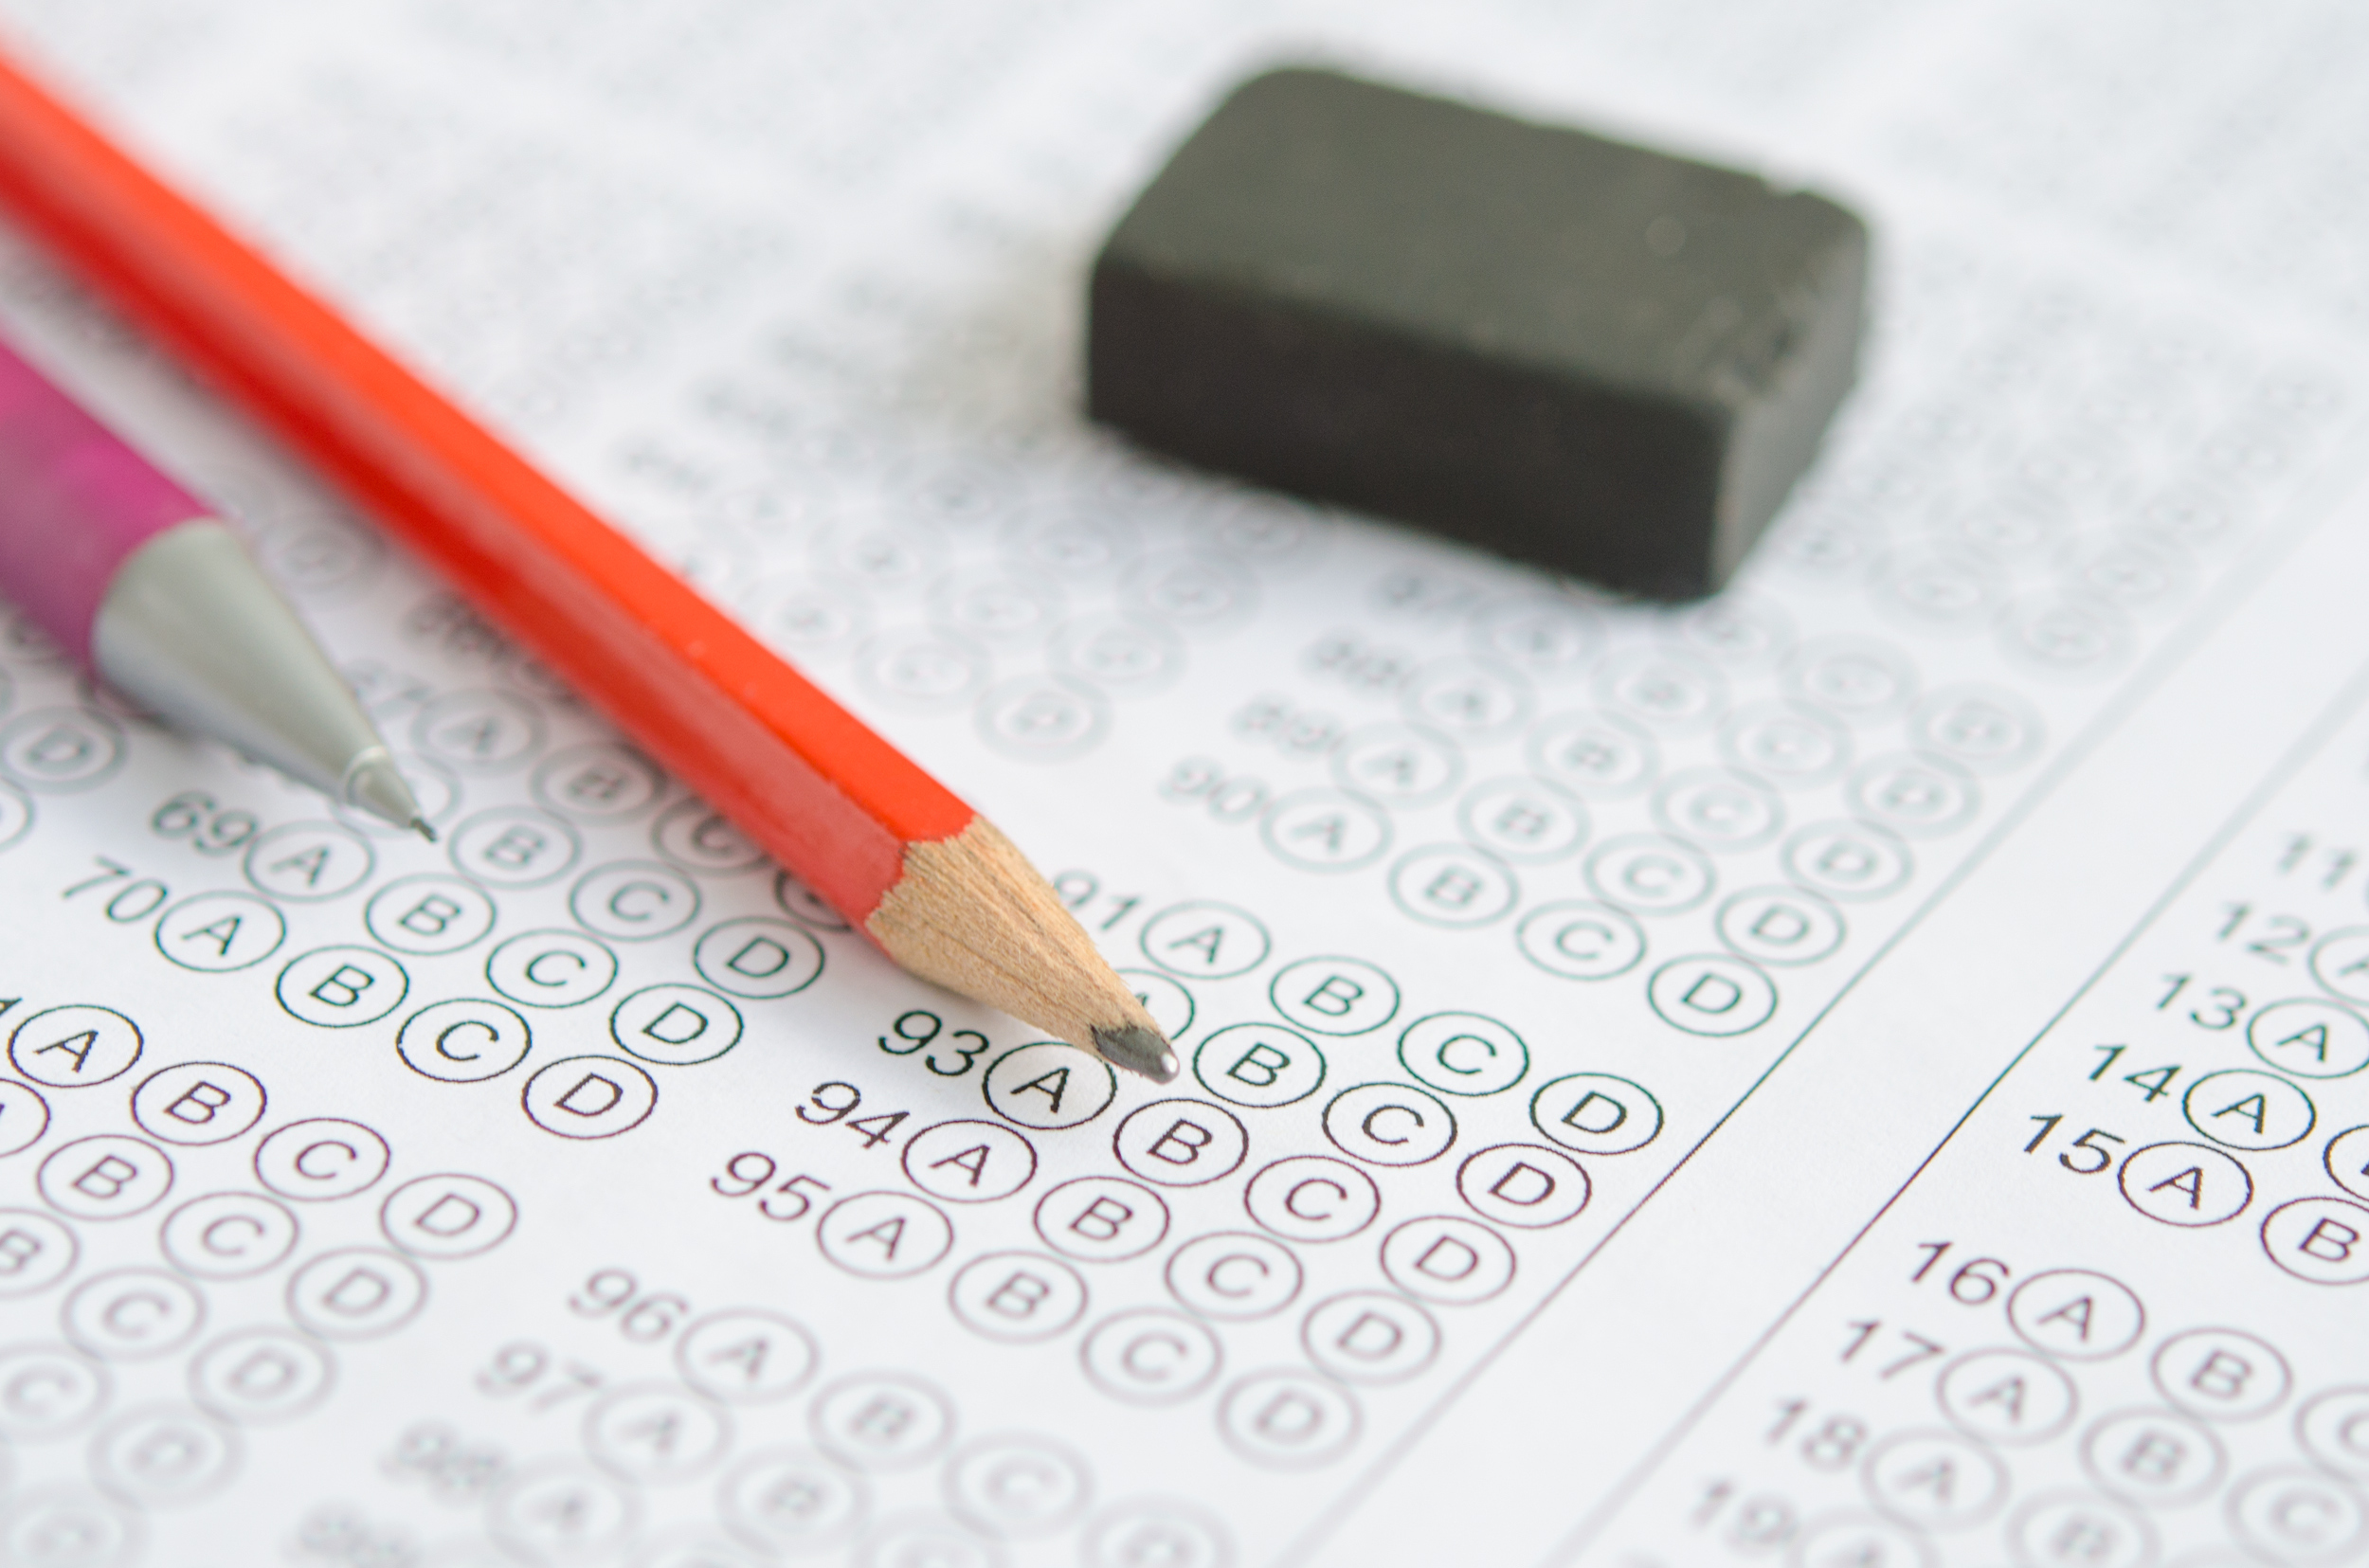 Maximize your SAT and ACT scores.